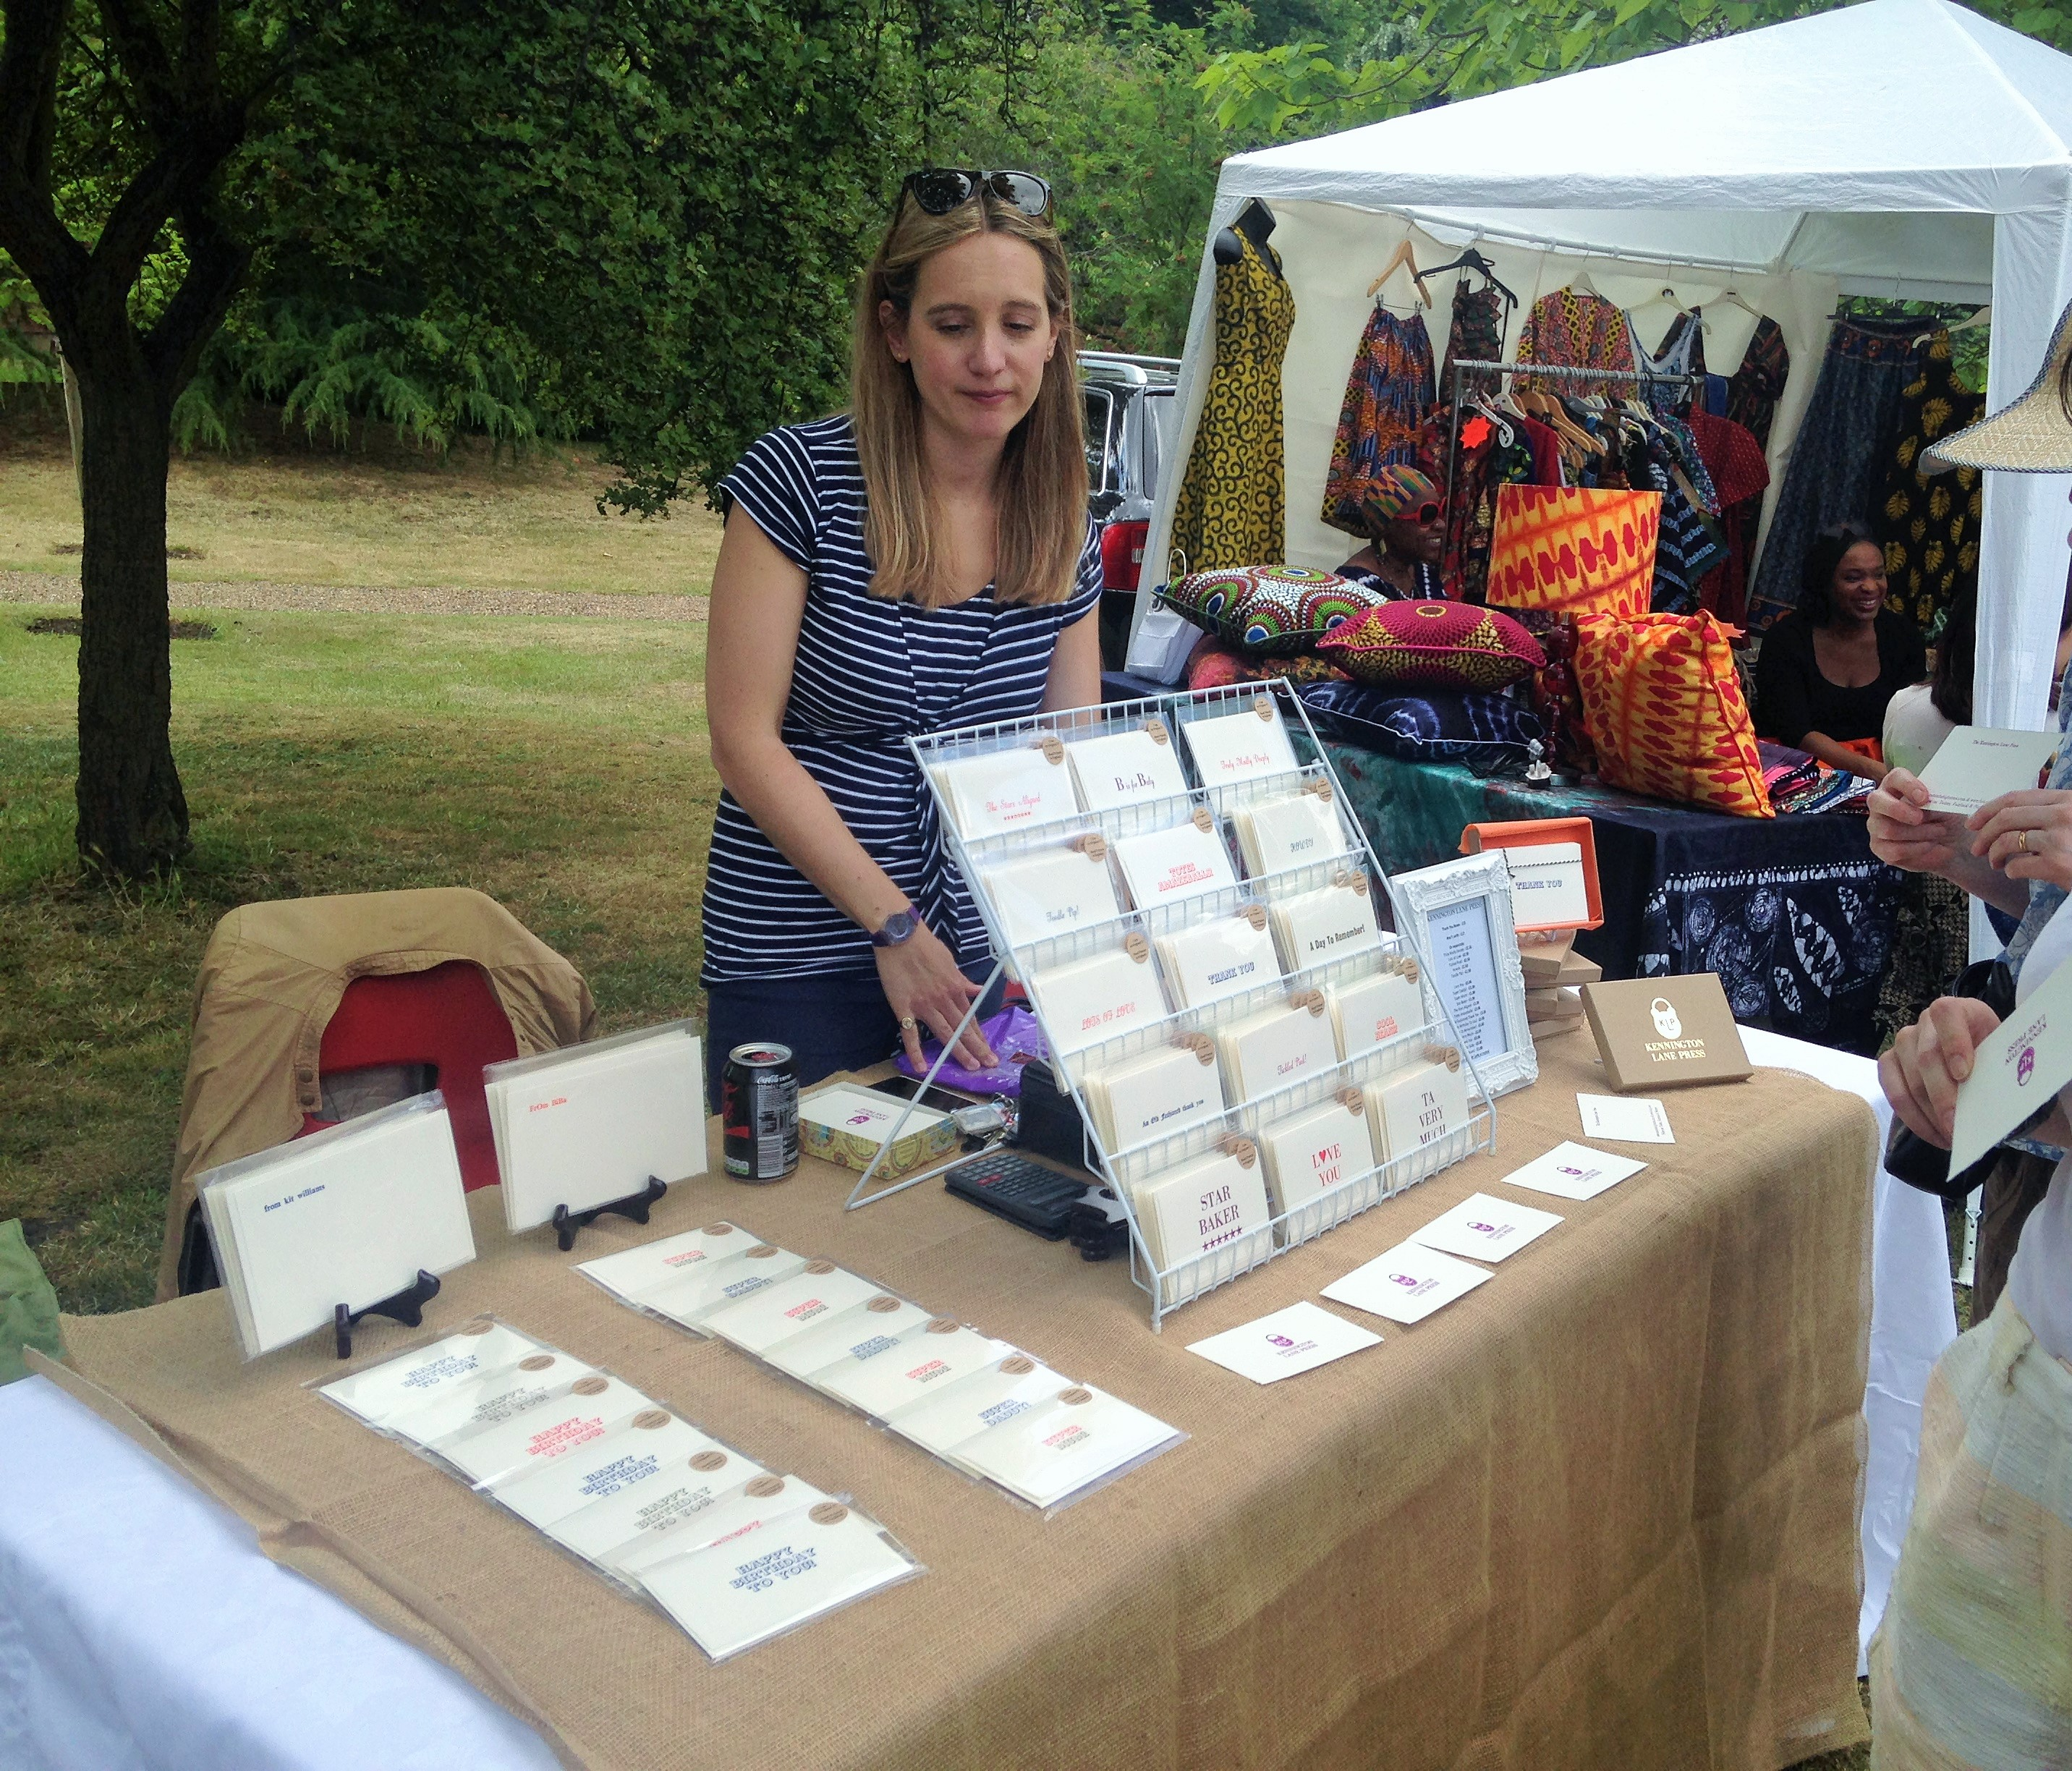 Kennington Lane Letter Press stall at North Lambeth Parish Fete